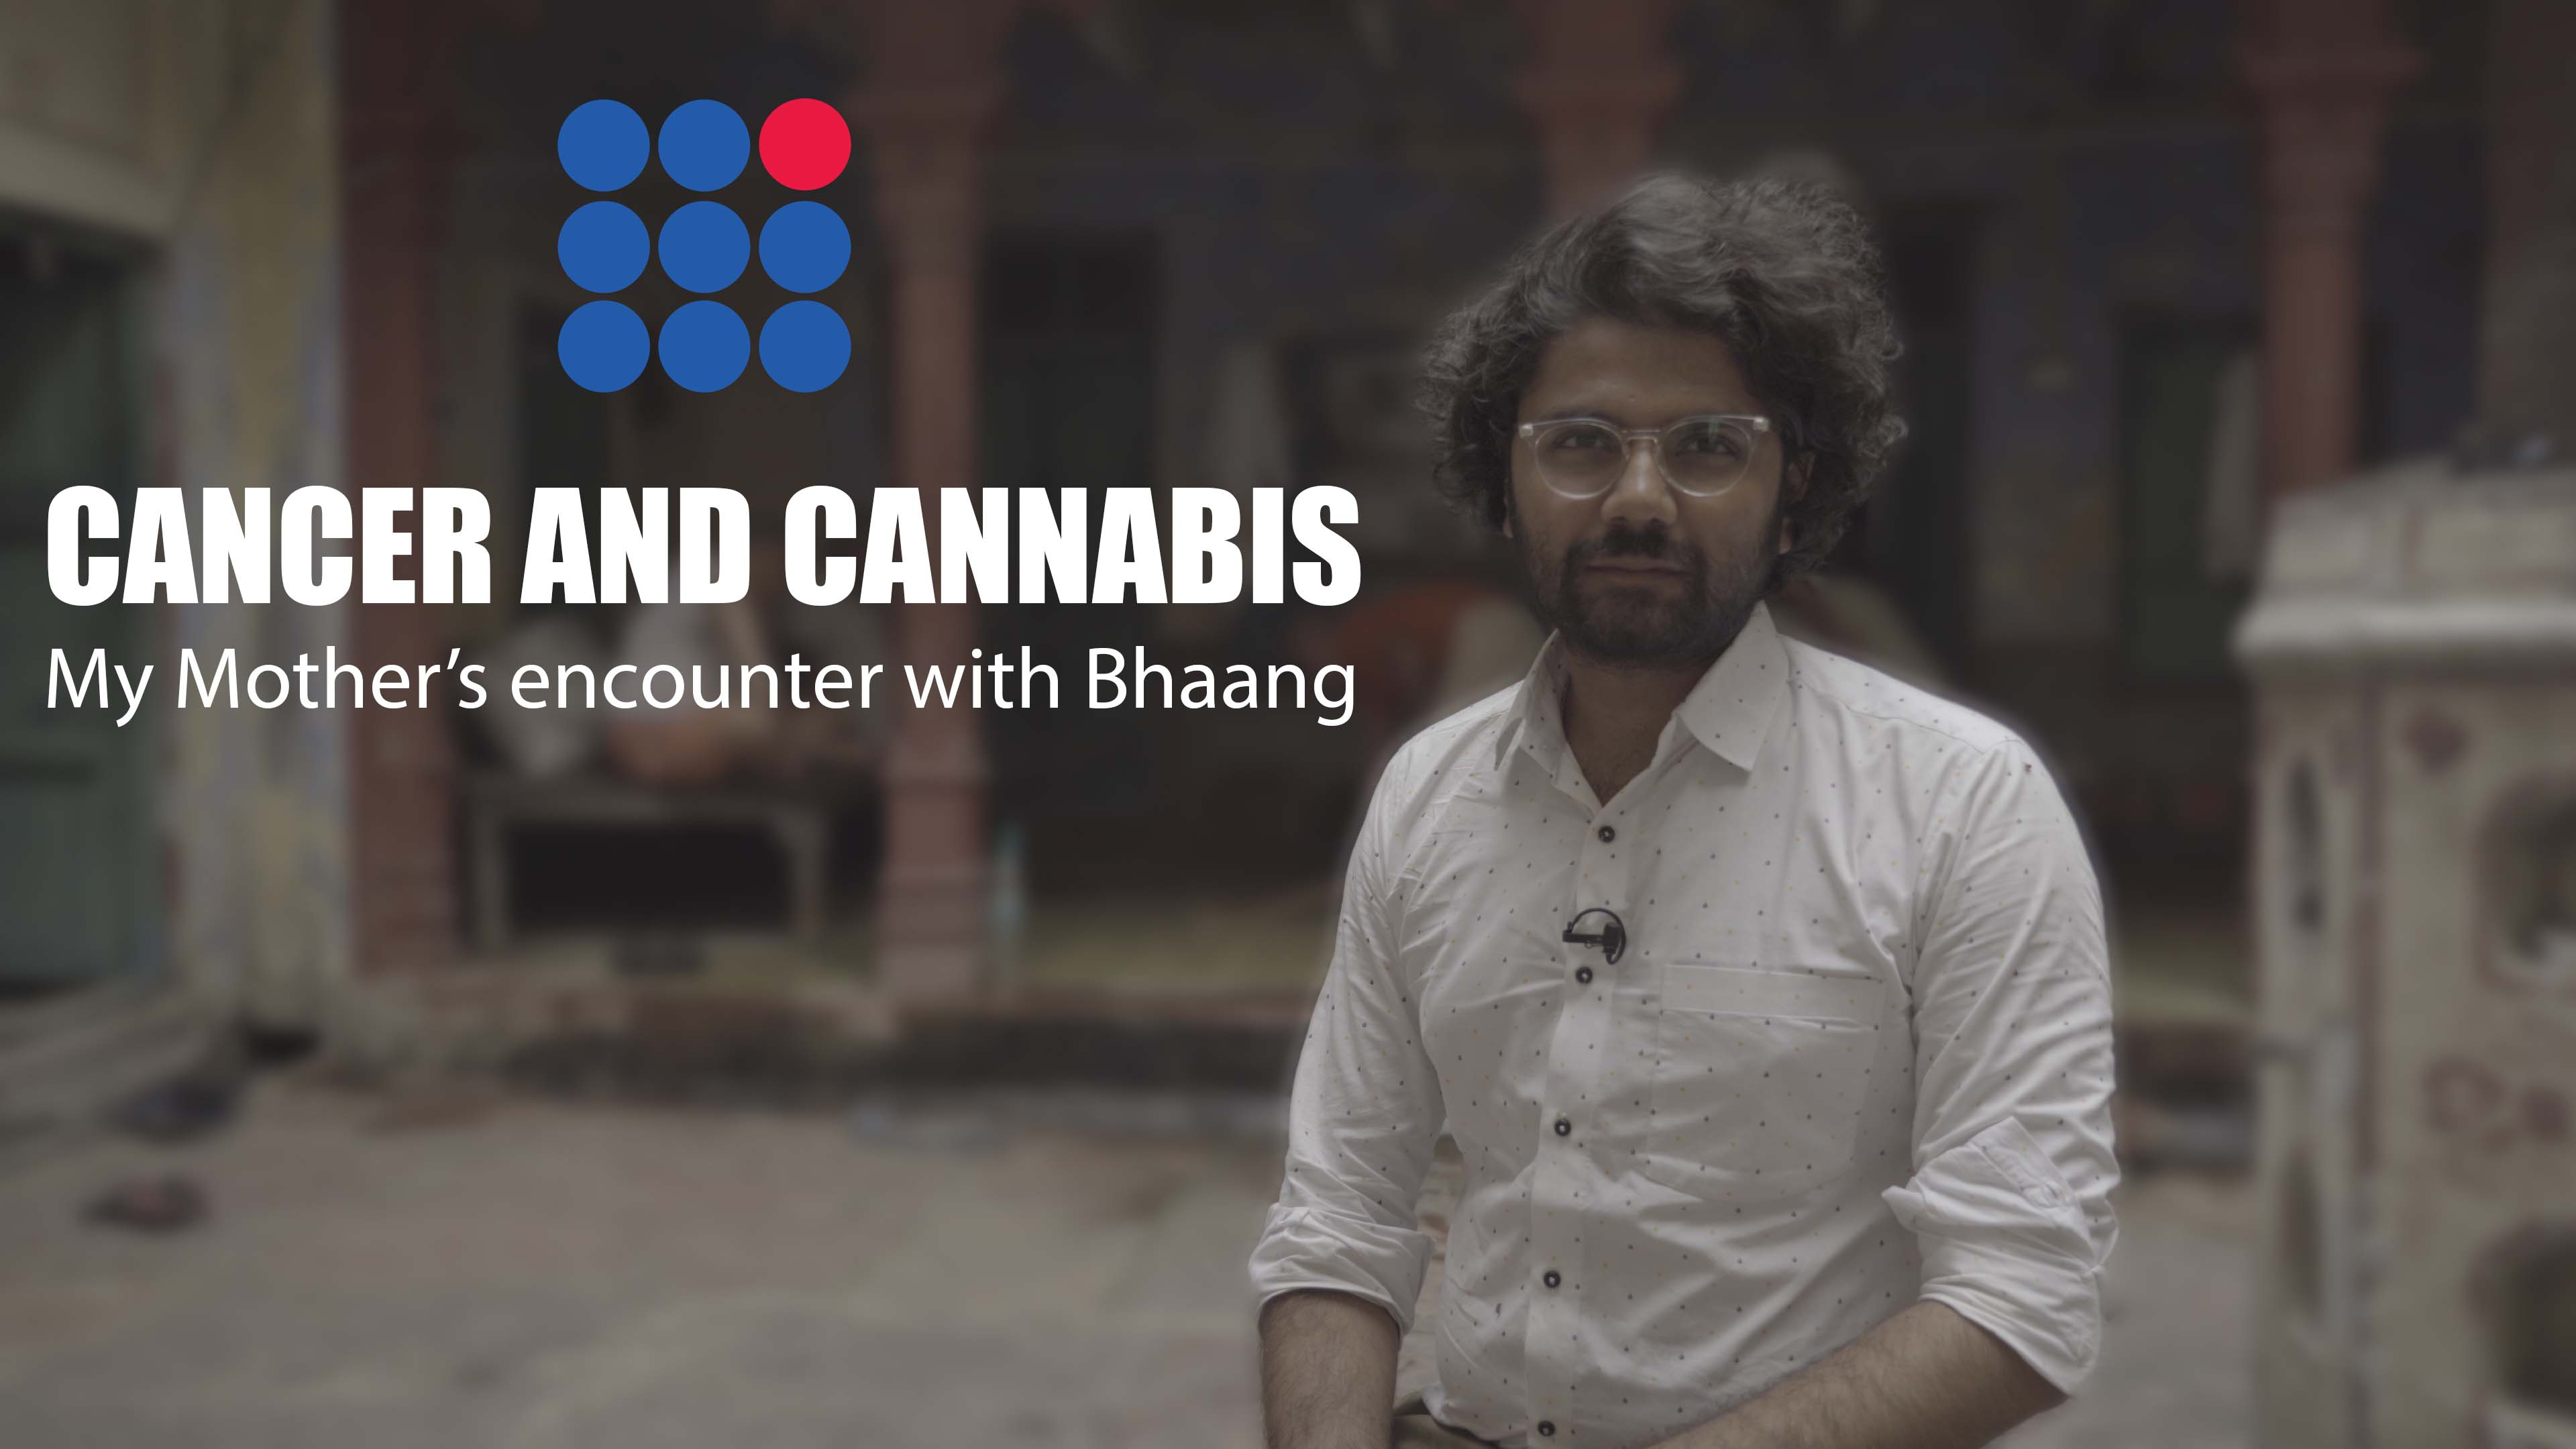 Cancer and Cannabis: my mothers rencounter with bhaang